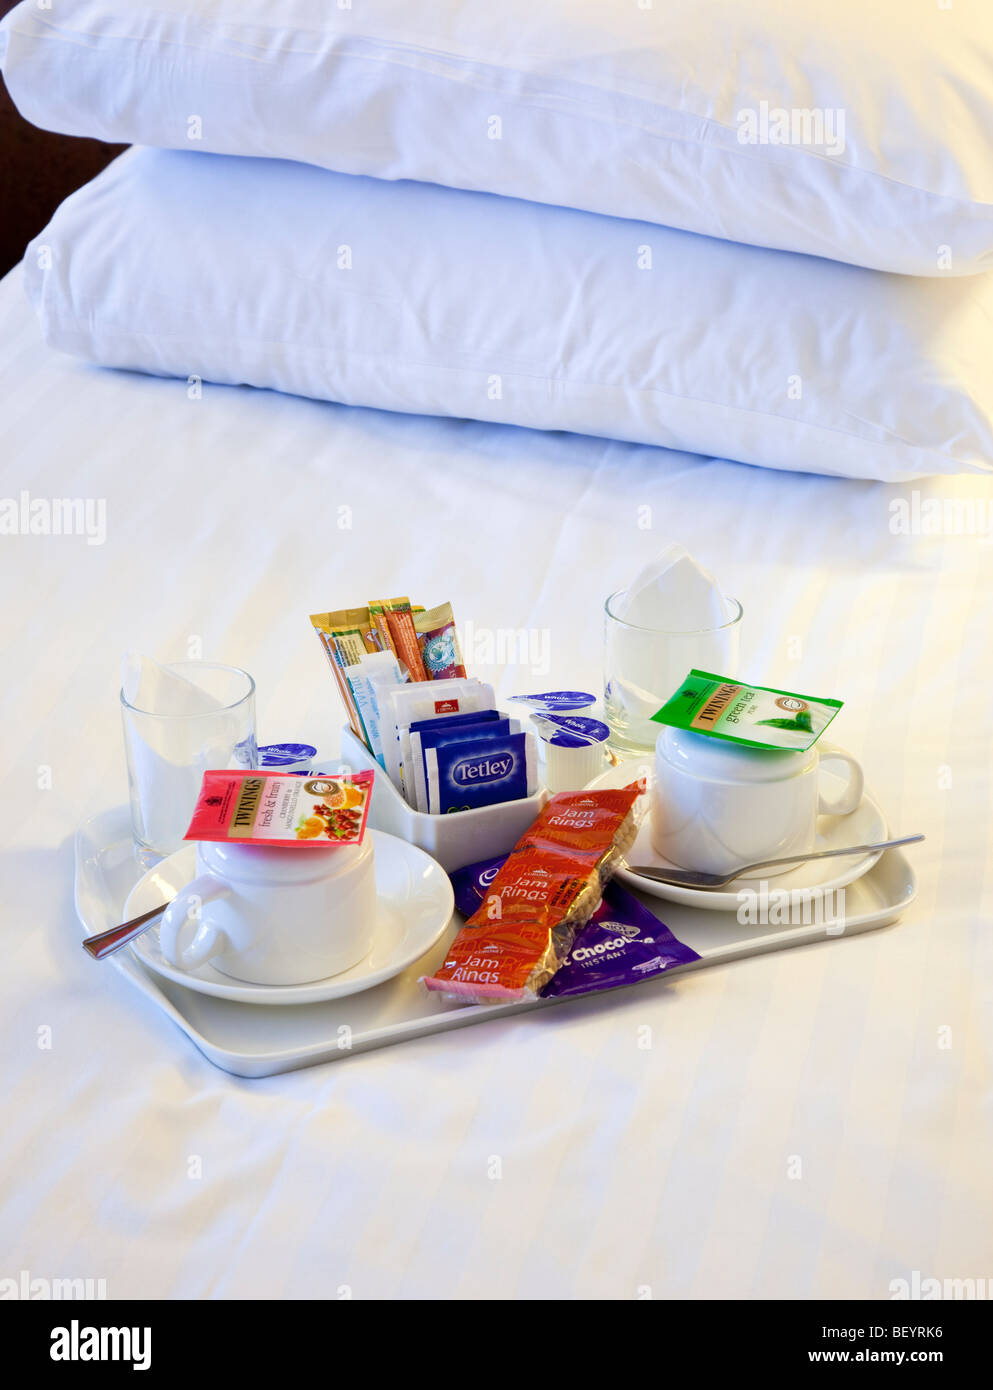 Tea and coffee tray on a hotel room bed - Stock Image